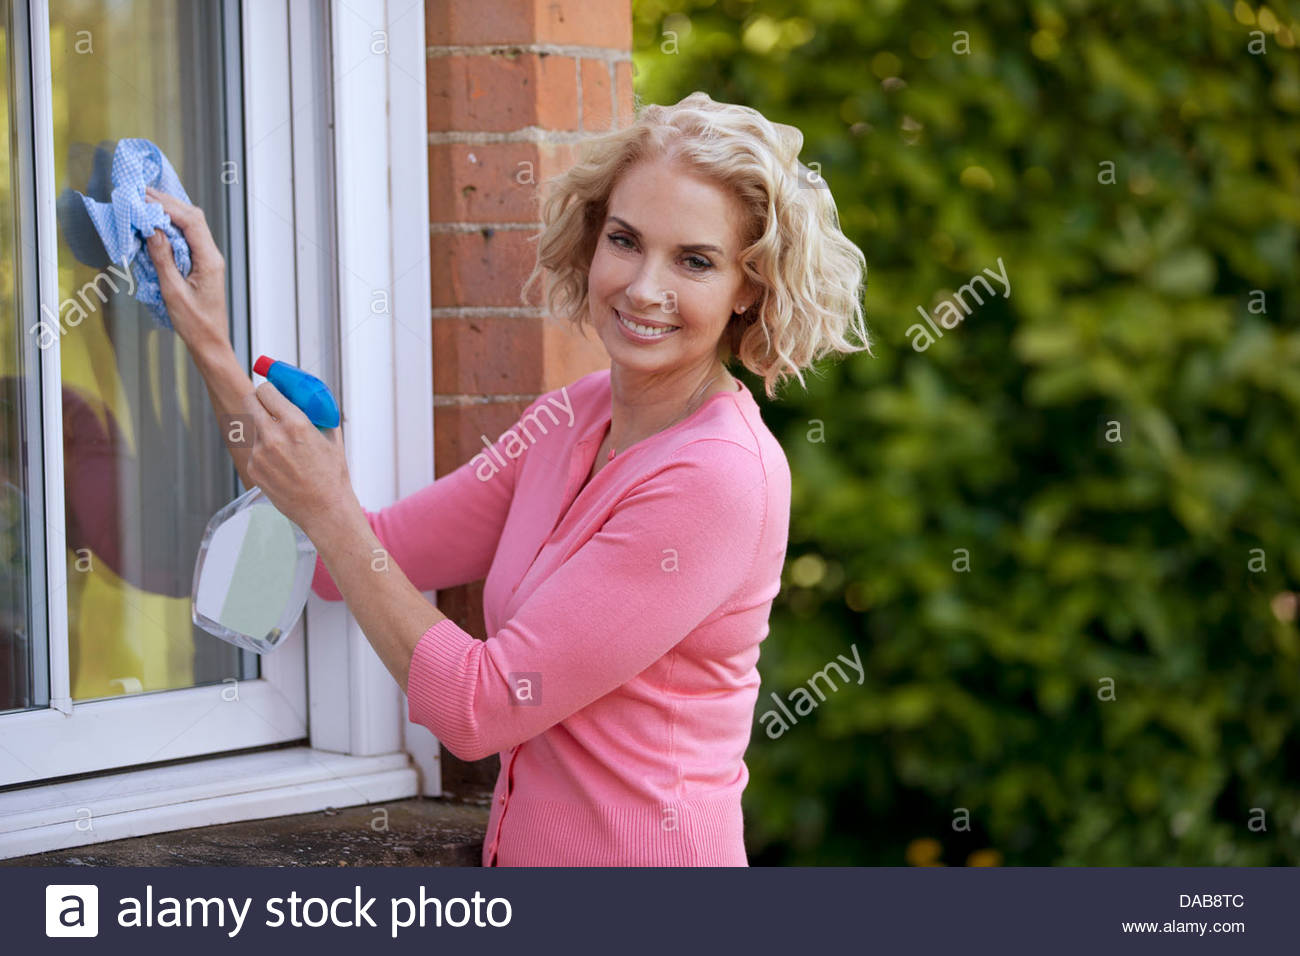 A mature woman cleaning windows of a house - Stock Image